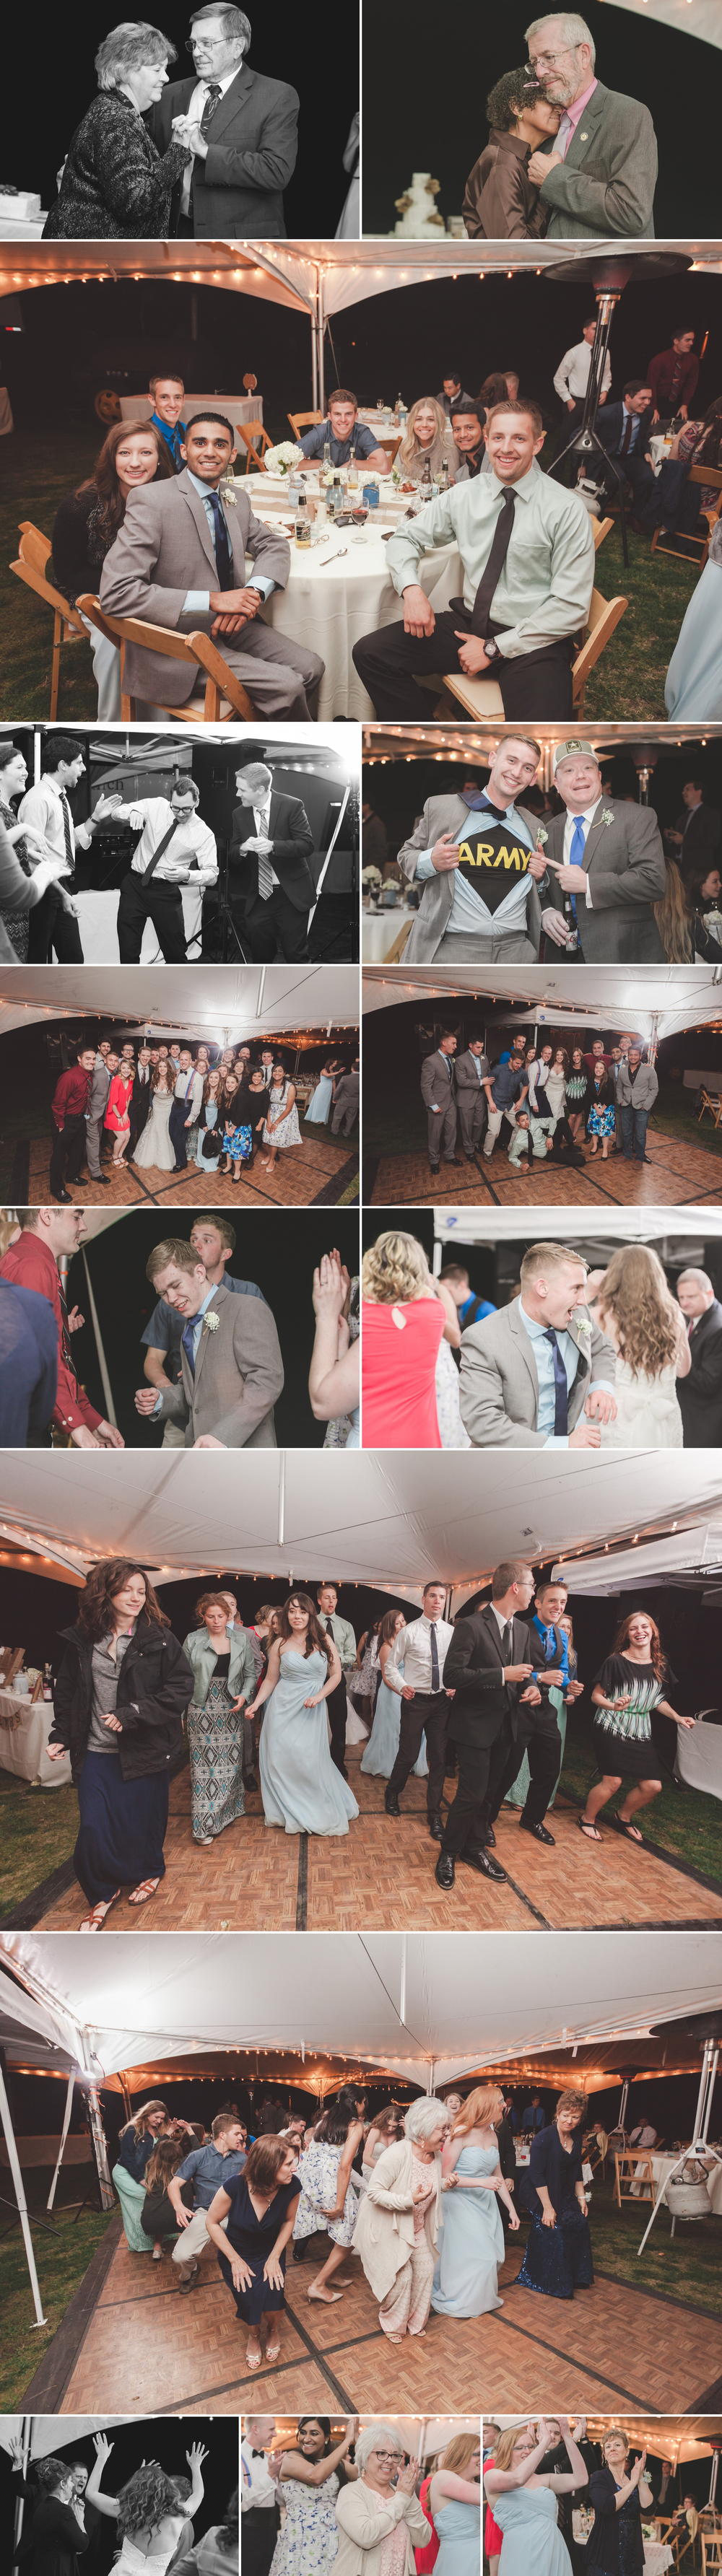 Halverson White Wedding 19.jpg